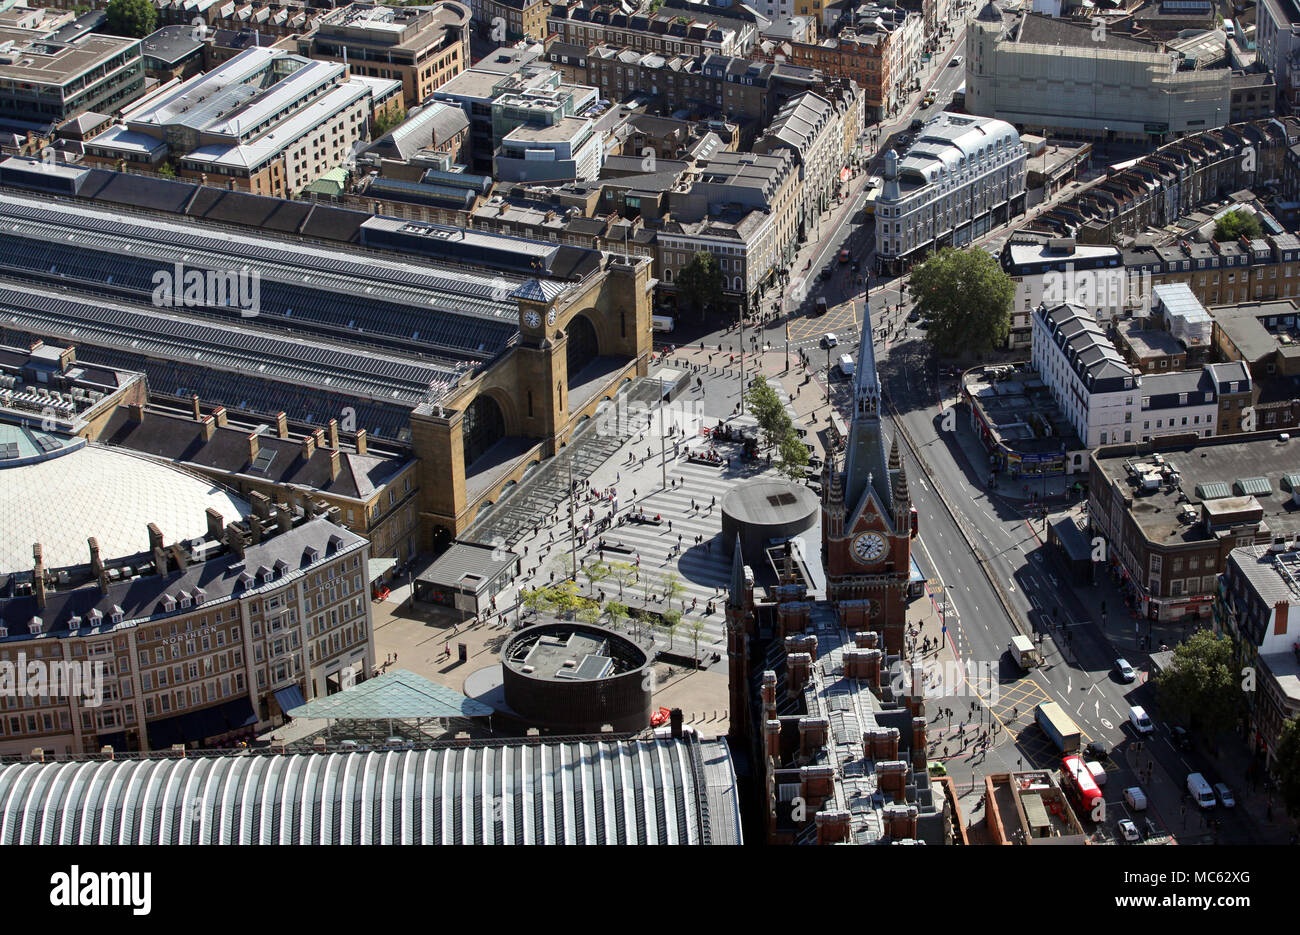 aerial view of commuters & people outside London St Pancras & Kings Cross Stations, London - Stock Image